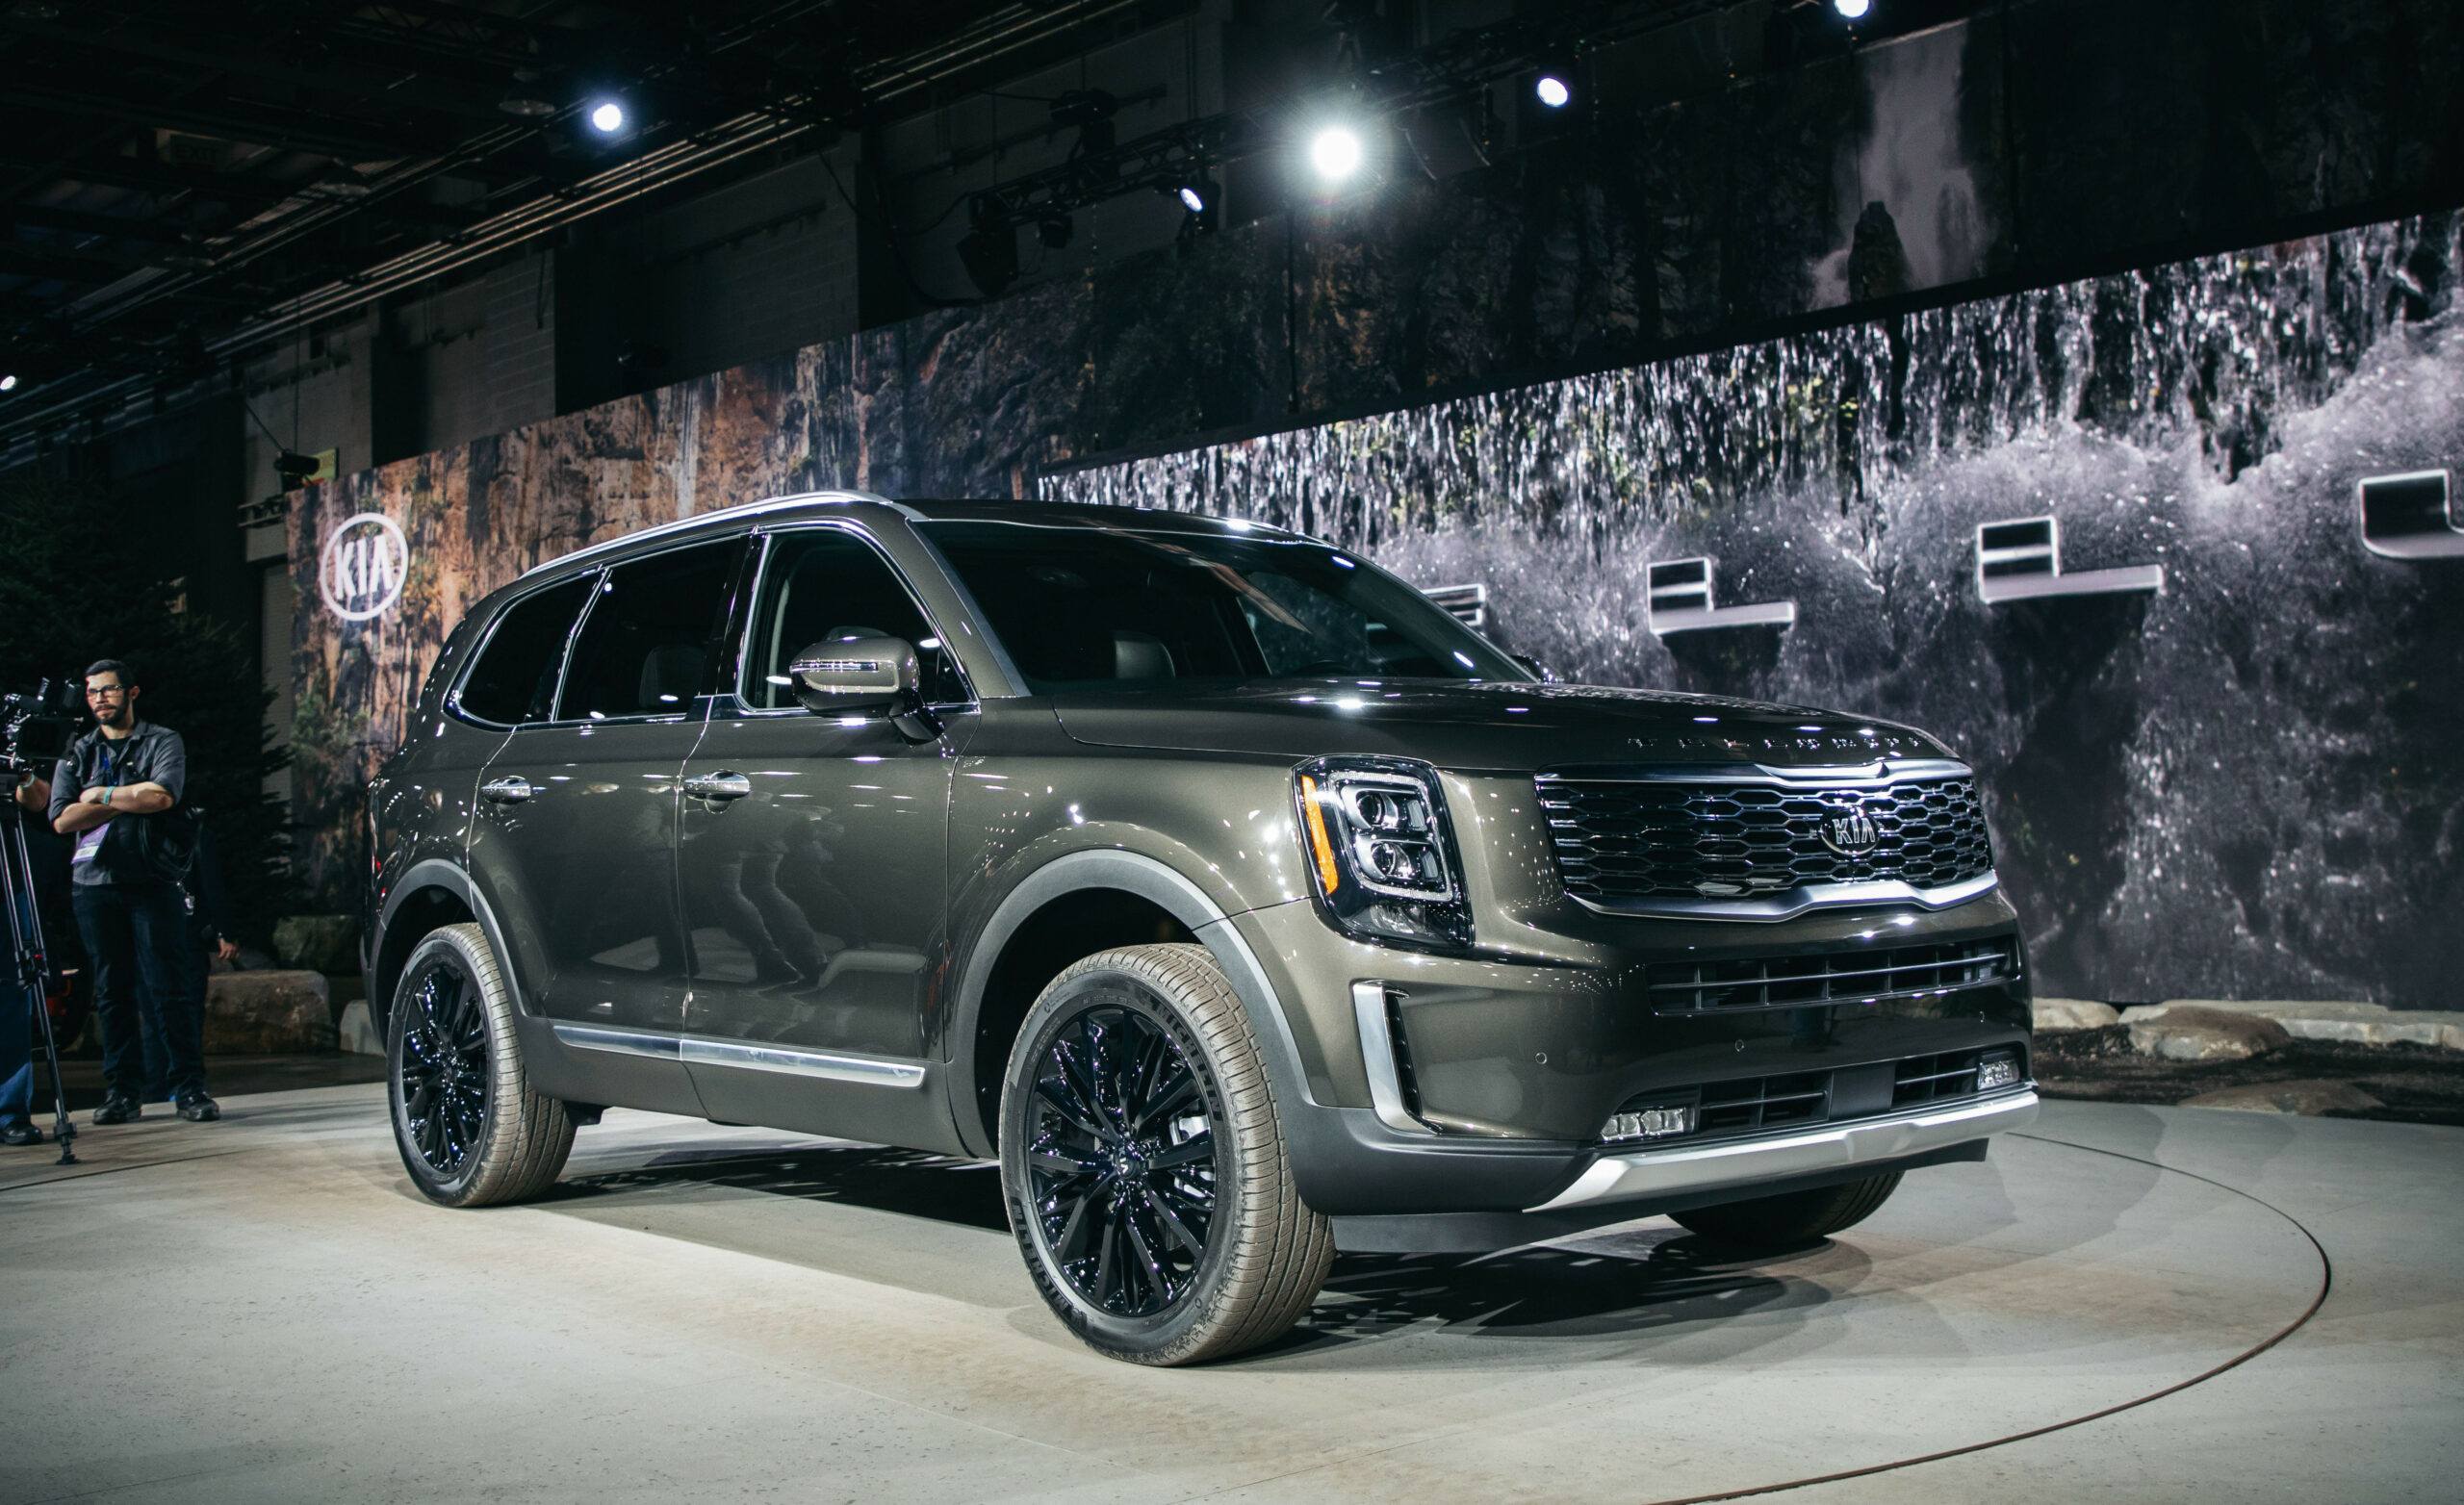 9 Kia Telluride Three-Row SUV – V-9 Flagship Crossover